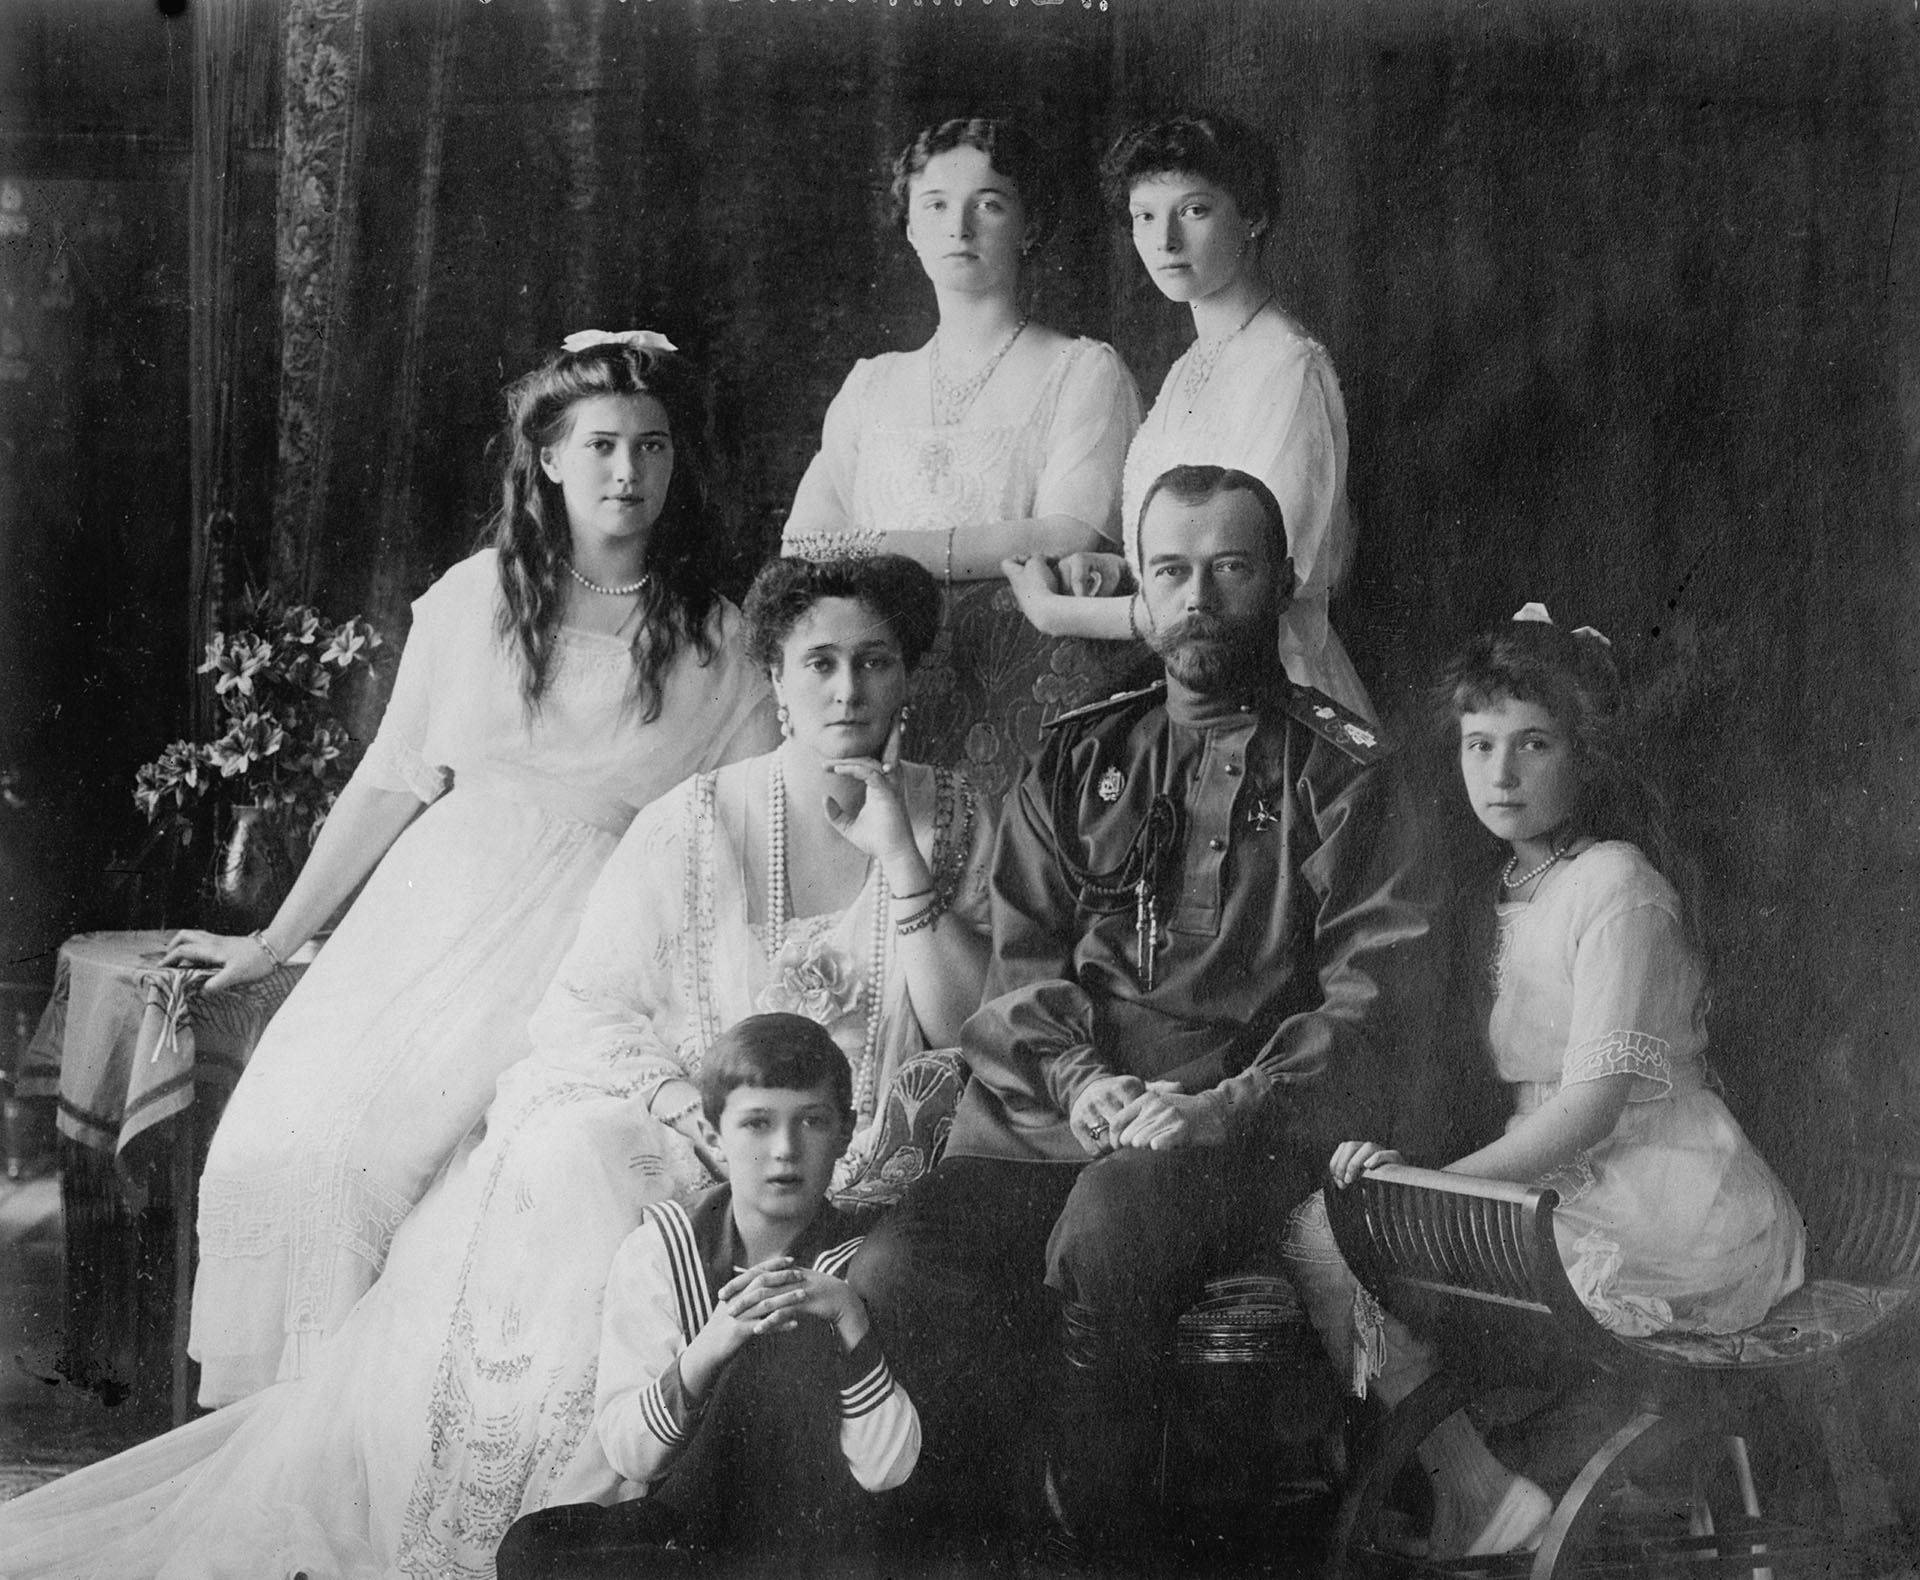 El zar Nicolas II, su esposa y sus cinco hijos, en el años 1910. (Photo by Fine Art Images/Heritage Images/Getty Images)